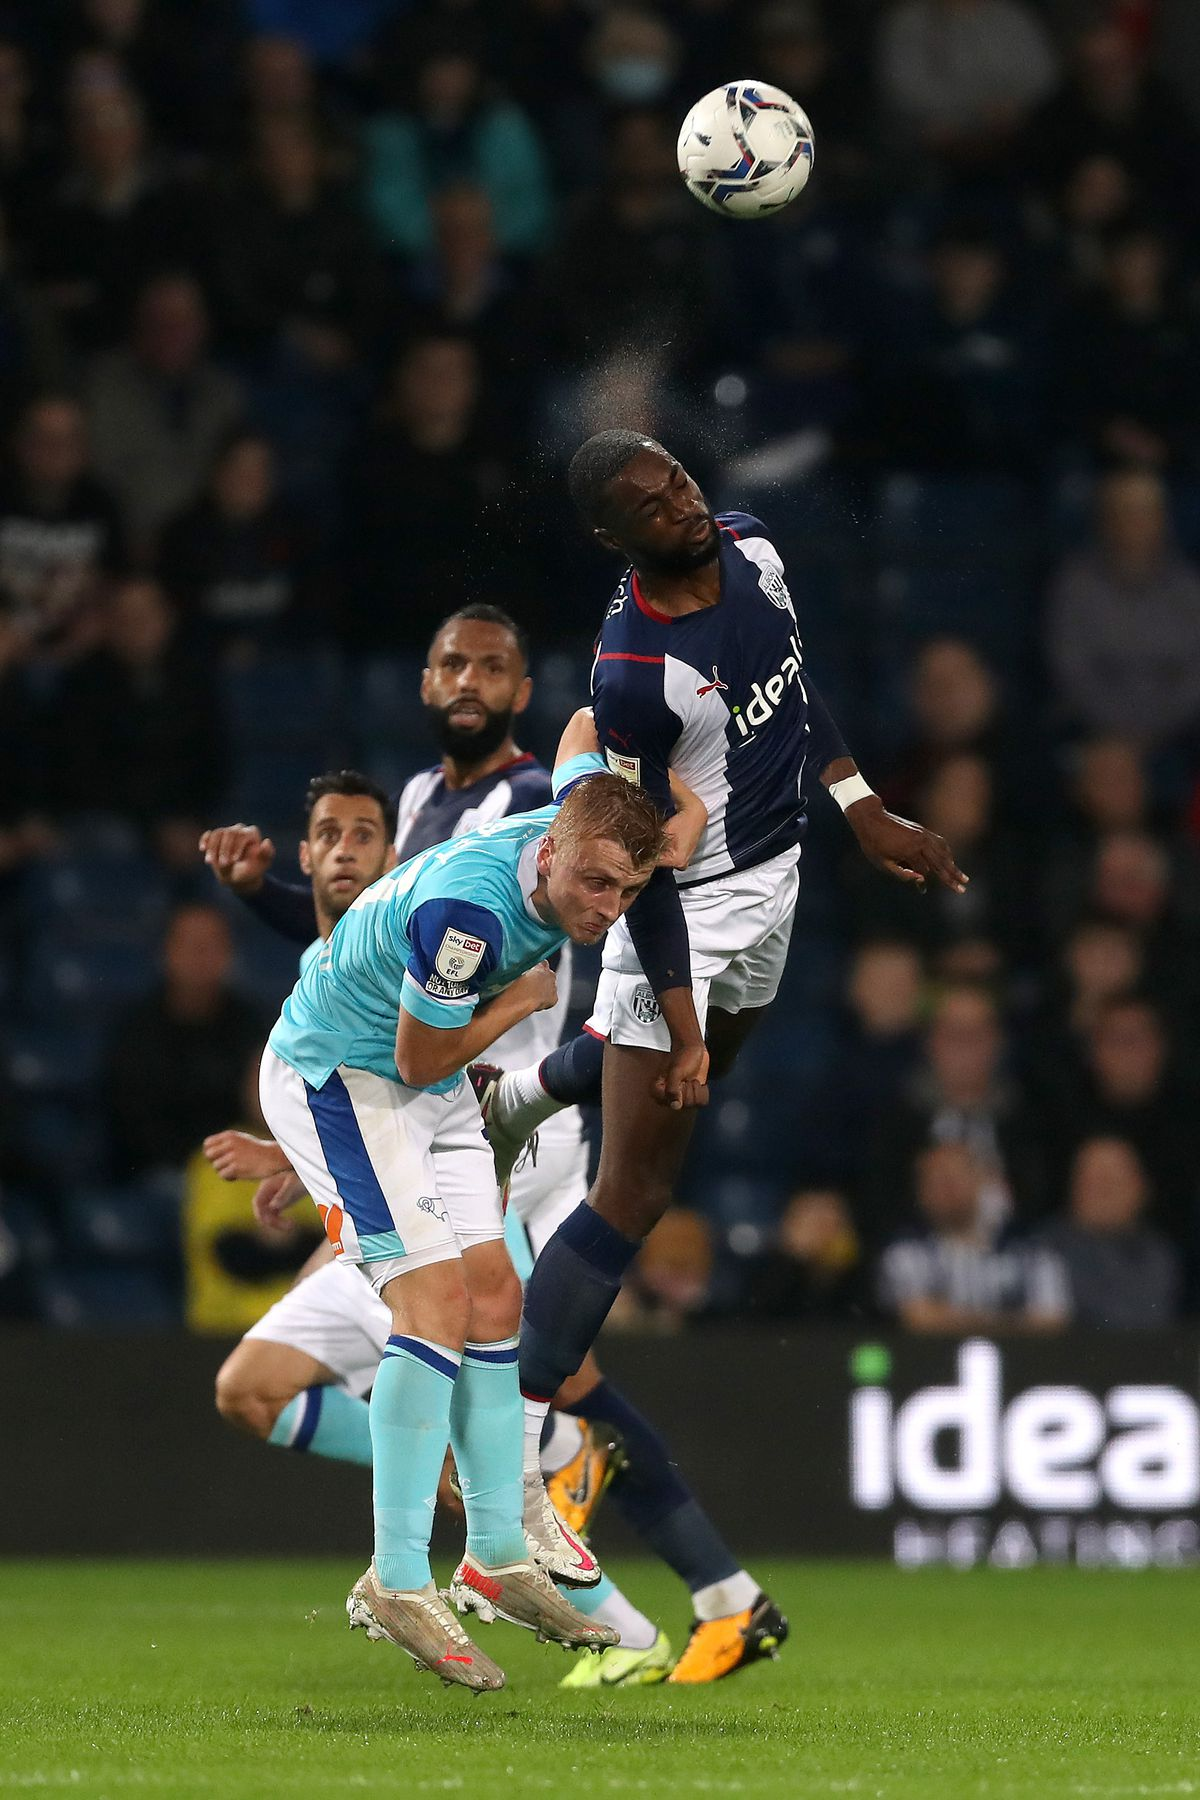 Semi Ajayi of West Bromwich Albion and Louie Sibley of Derby County (Photo: WBA/Adam Fradgley)